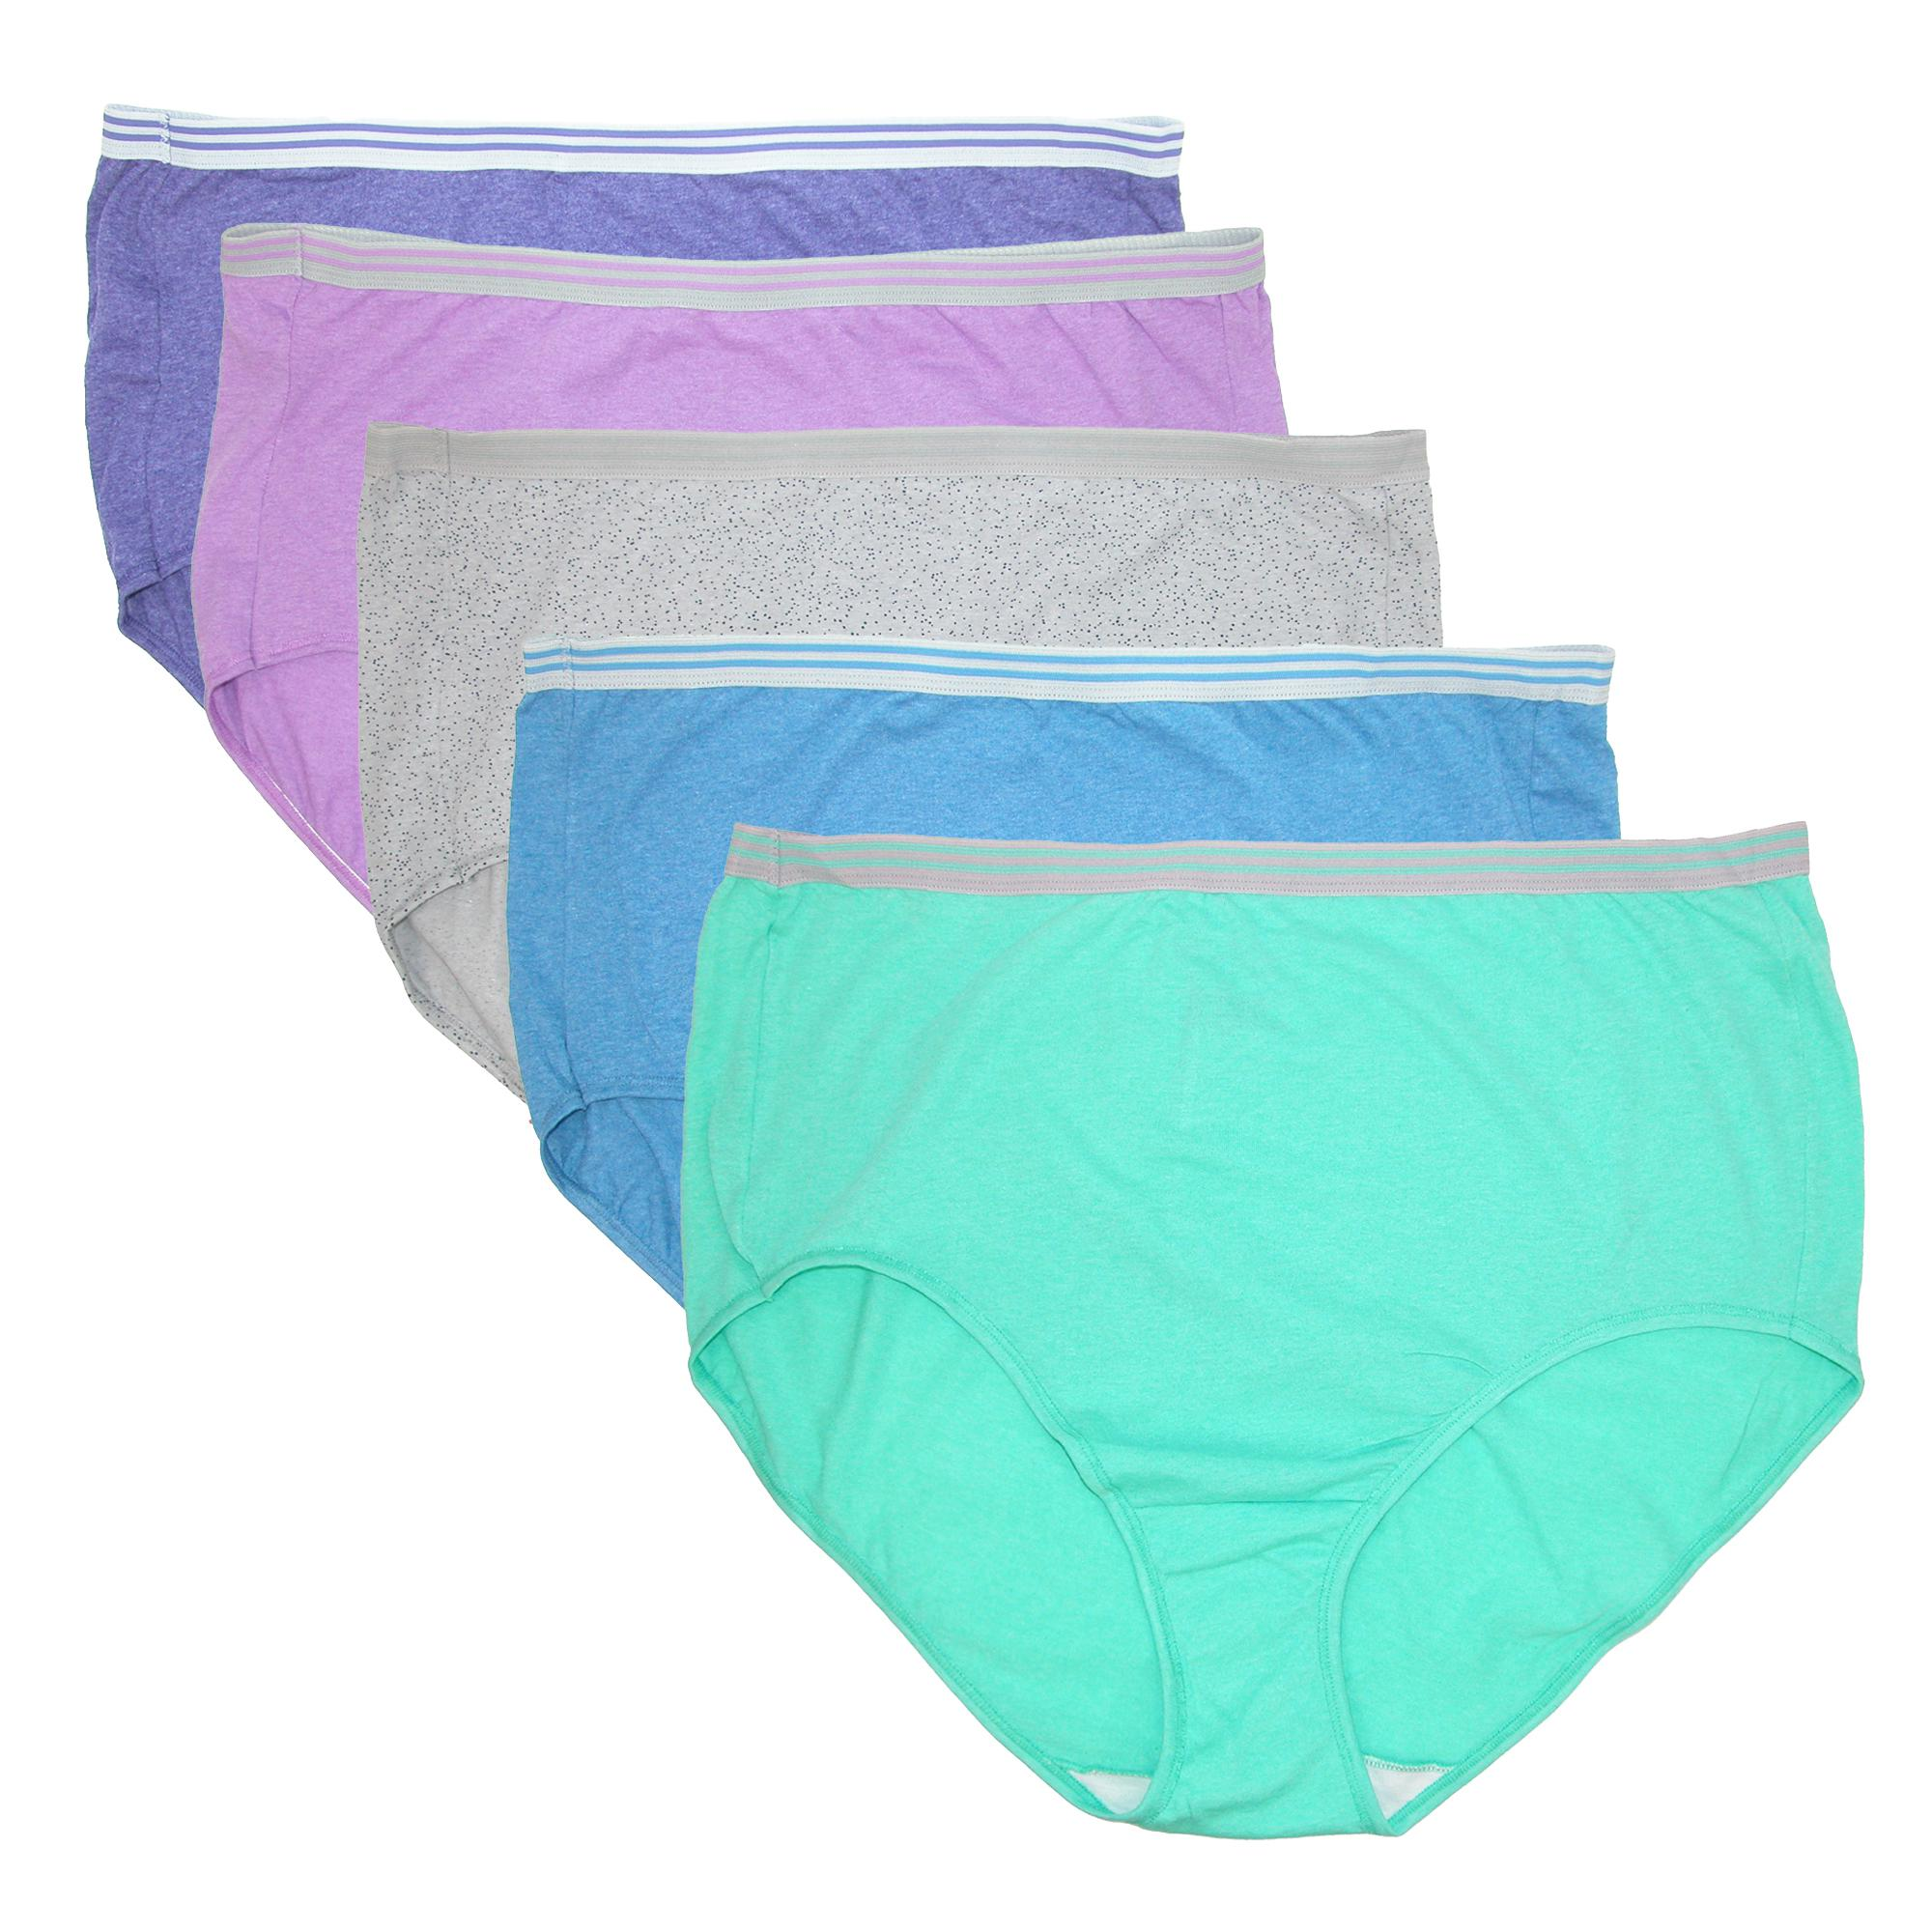 7d6ffdba16 Details about New Fruit of the Loom Women s Plus Size Heathered Briefs  Underwear (5 Pair Pack)